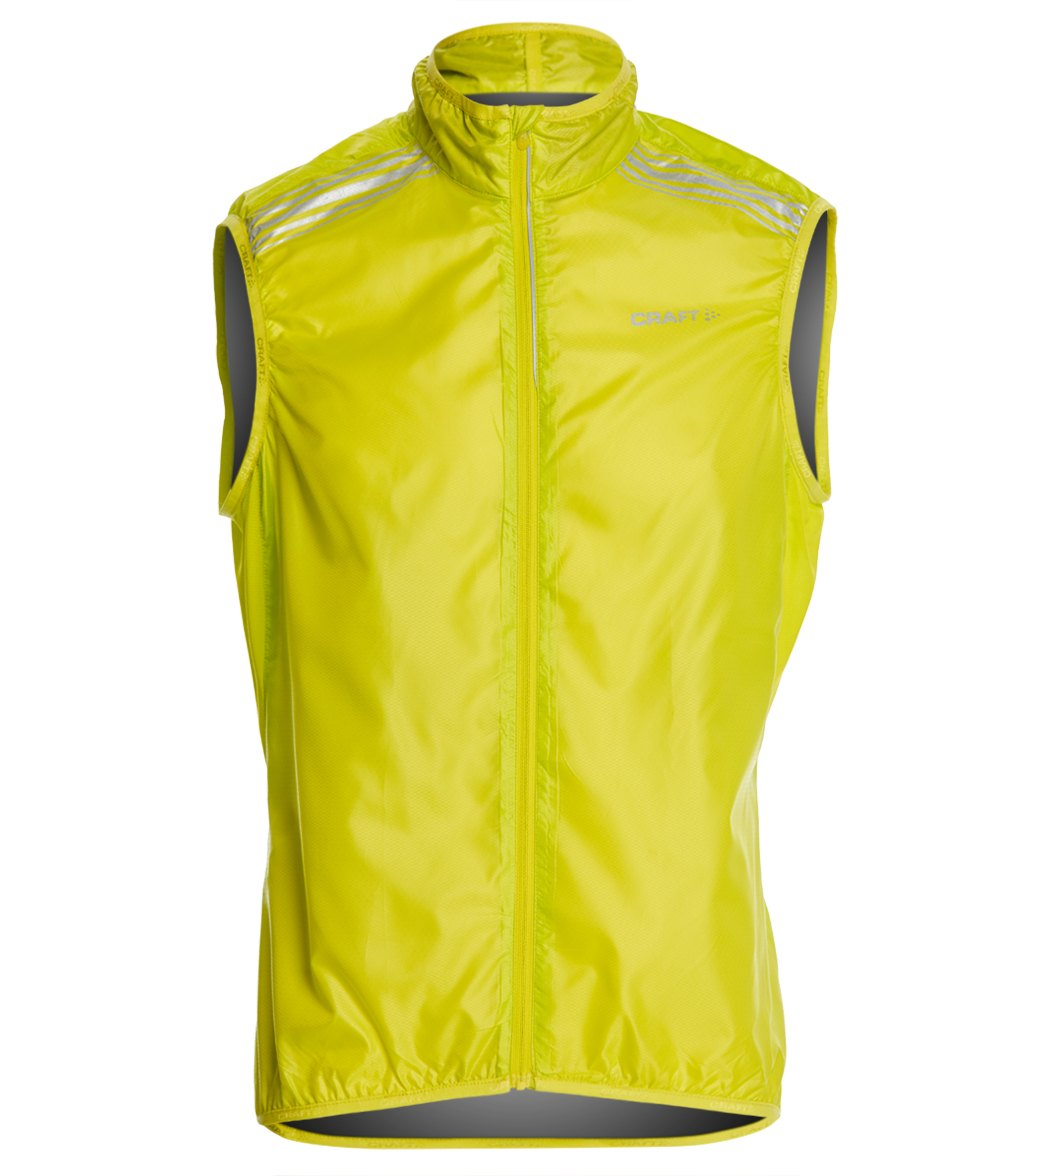 8593002e Craft Men's PB Featherlight Cycling Vest at SwimOutlet.com - Free Shipping